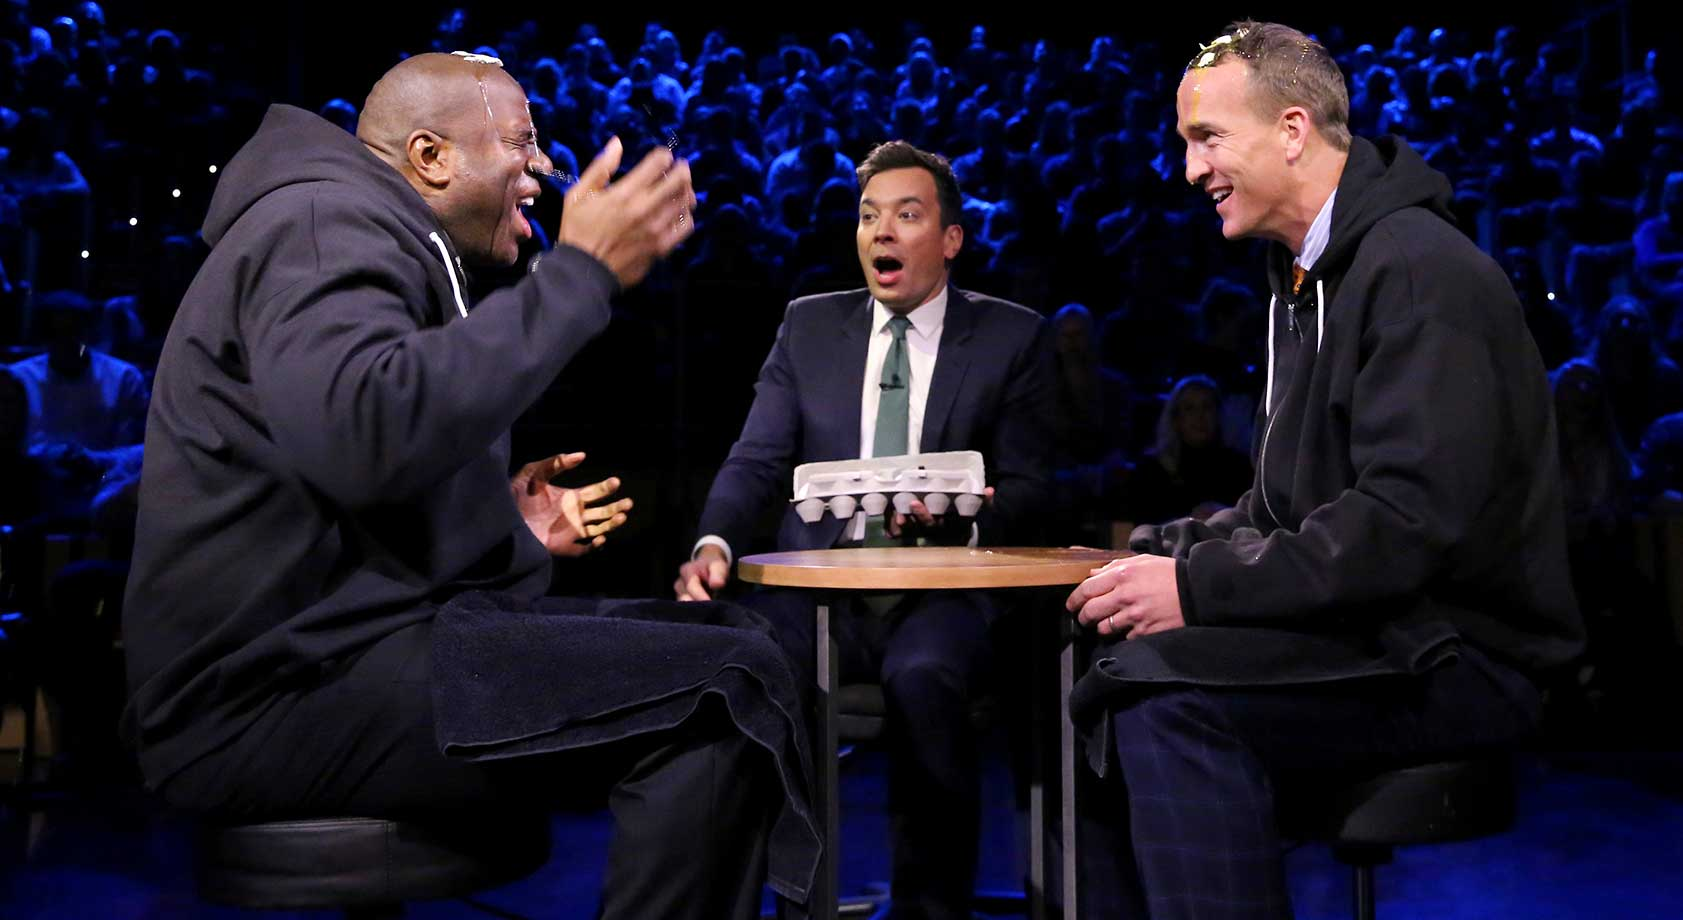 Magic Johnson and Peyton Manning play Egg Russian Roulette on Fallon.